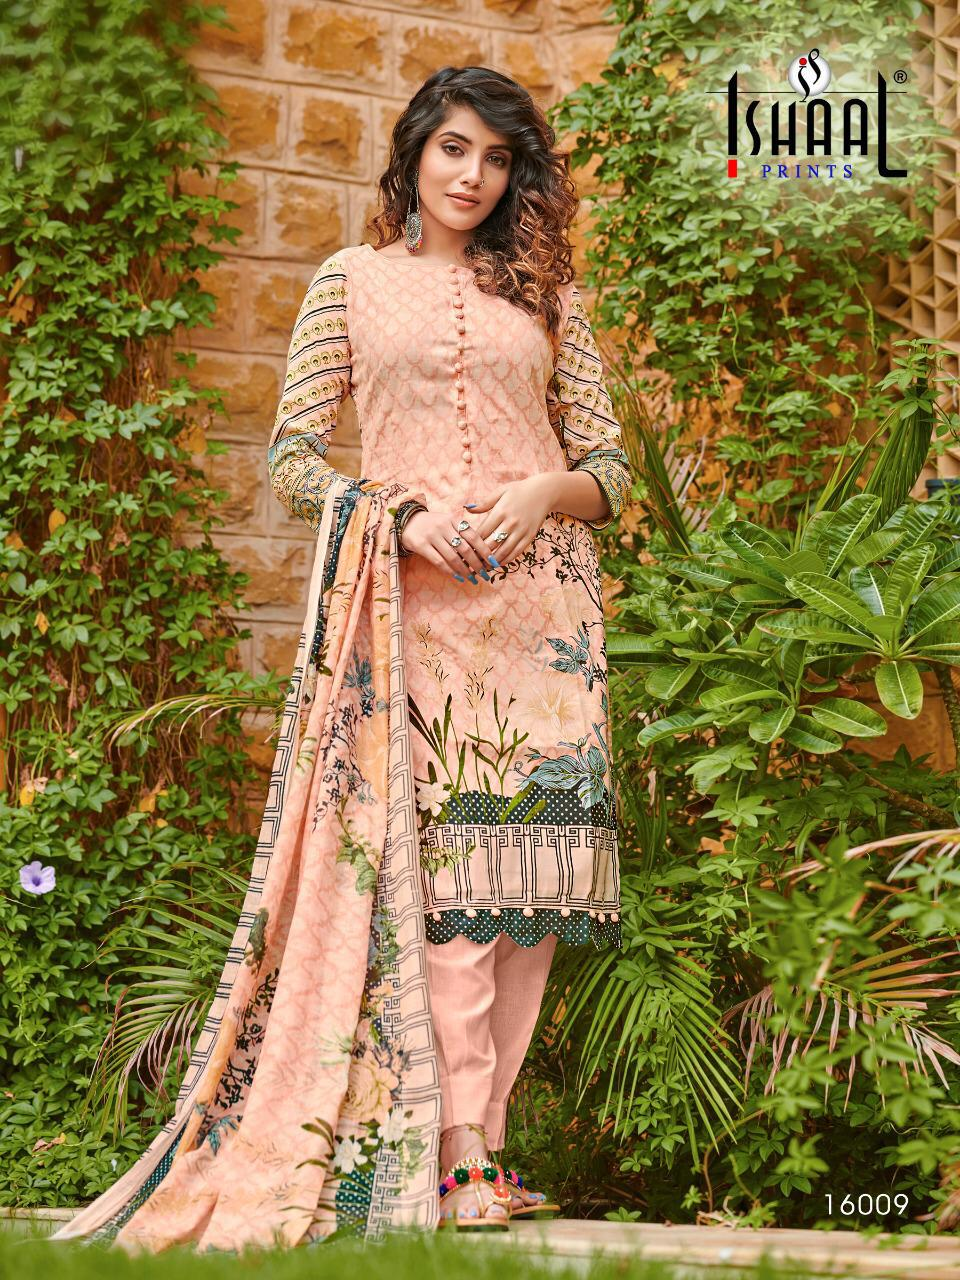 Ishaal Gulmohar Vol 16 Salwar Suit Wholesale Catalog 10 Pcs 10 - Ishaal Gulmohar Vol 16 Salwar Suit Wholesale Catalog 10 Pcs